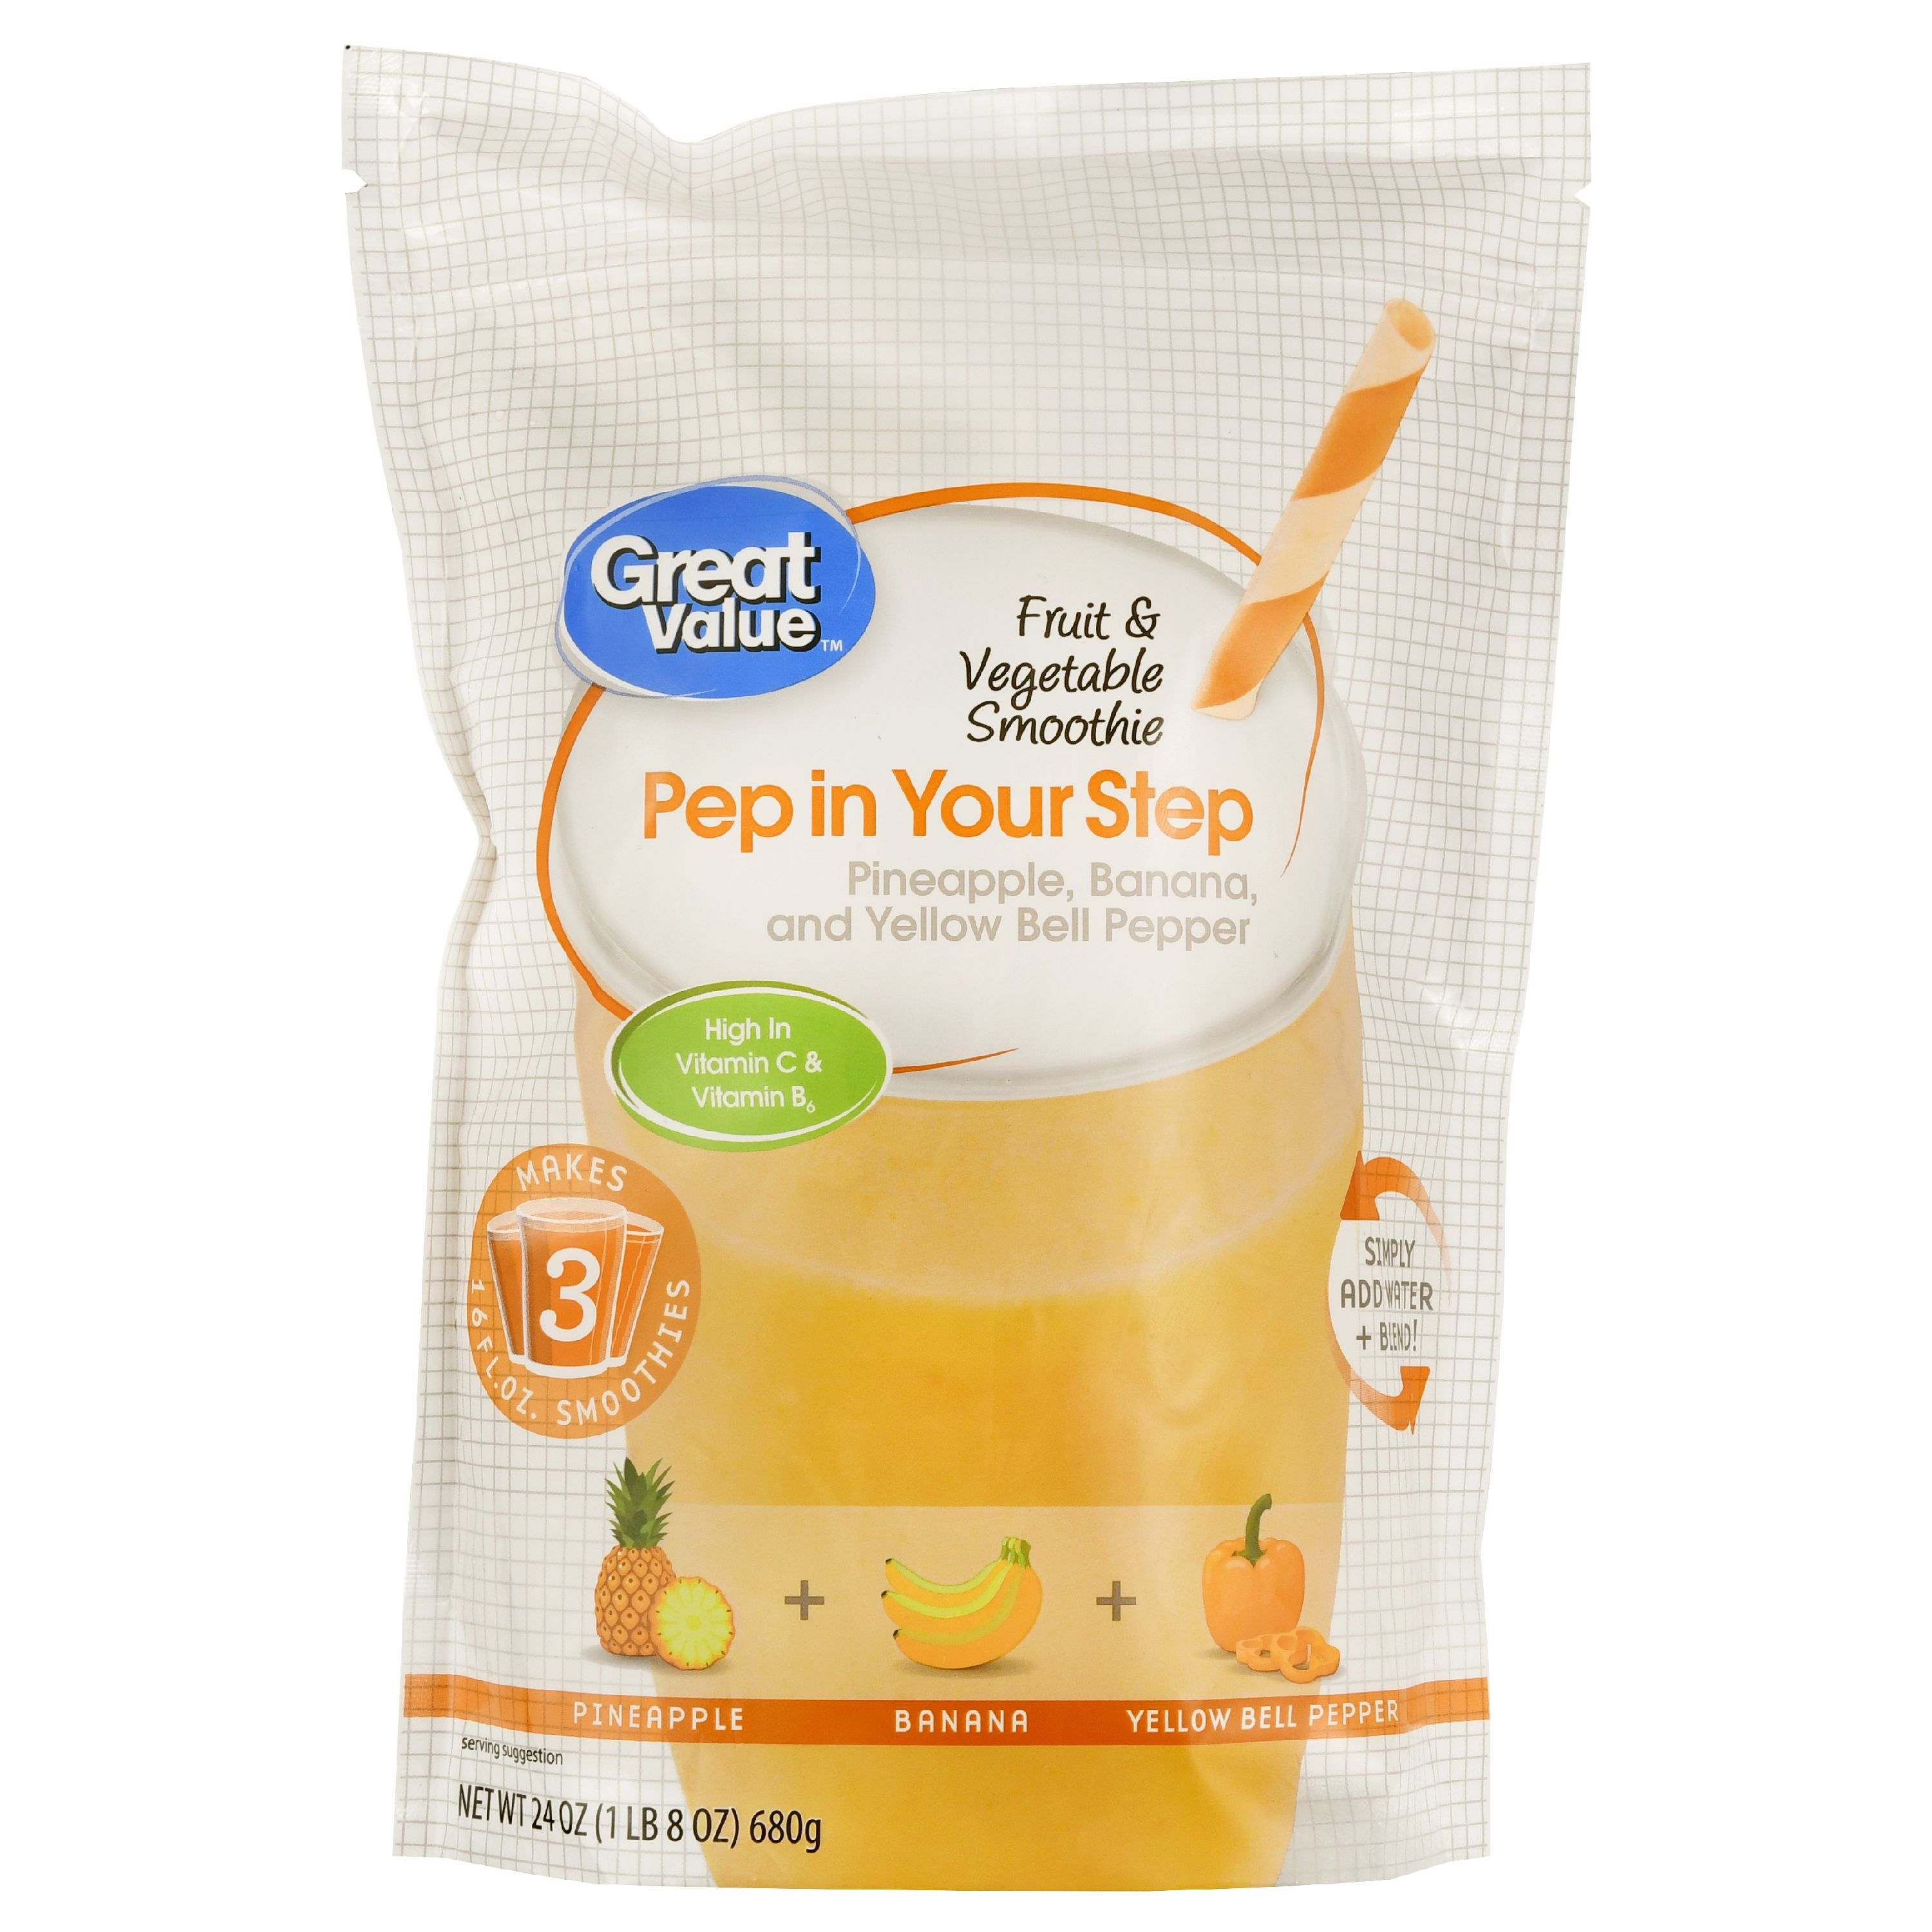 Great Value Fruit & Vegetable Smoothie, Pep in Your Step, 24 oz